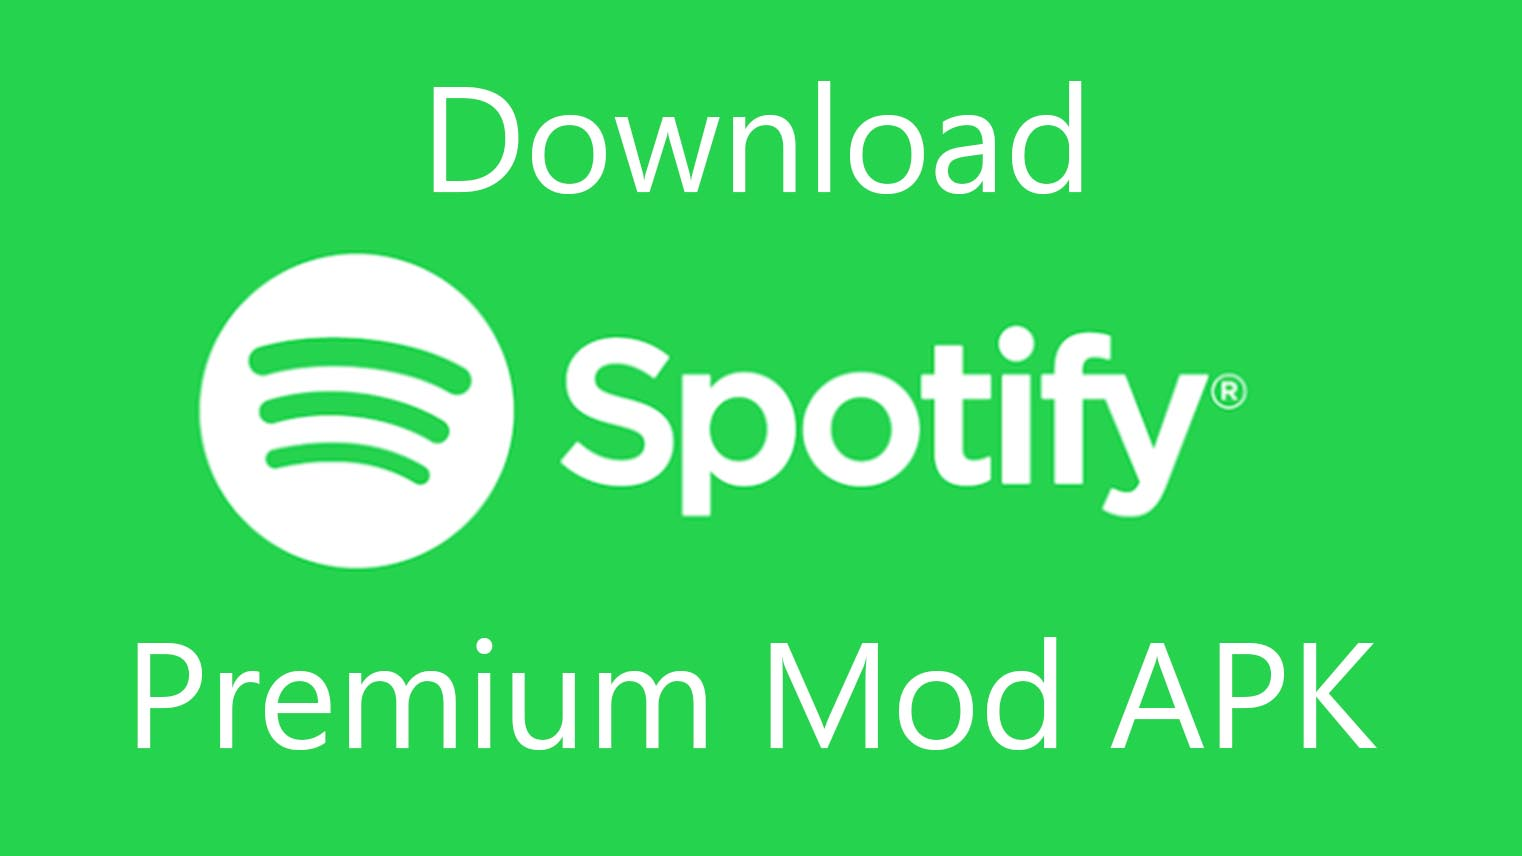 spotify mod premium apk old version